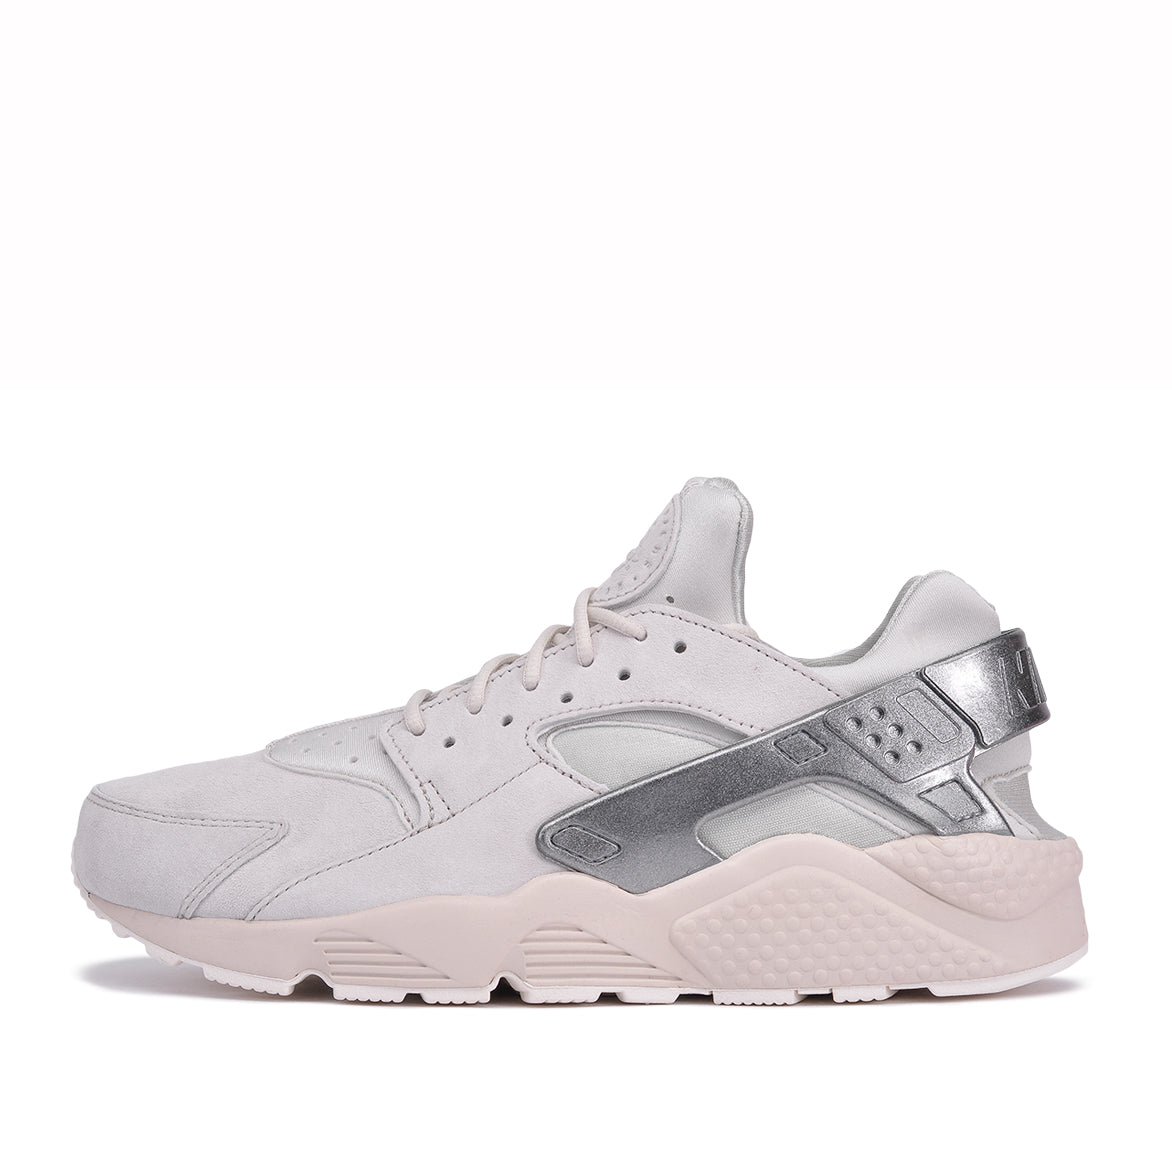 AIR HUARACHE RUN PRM LIGHT BONE METALLIC COOL GREY